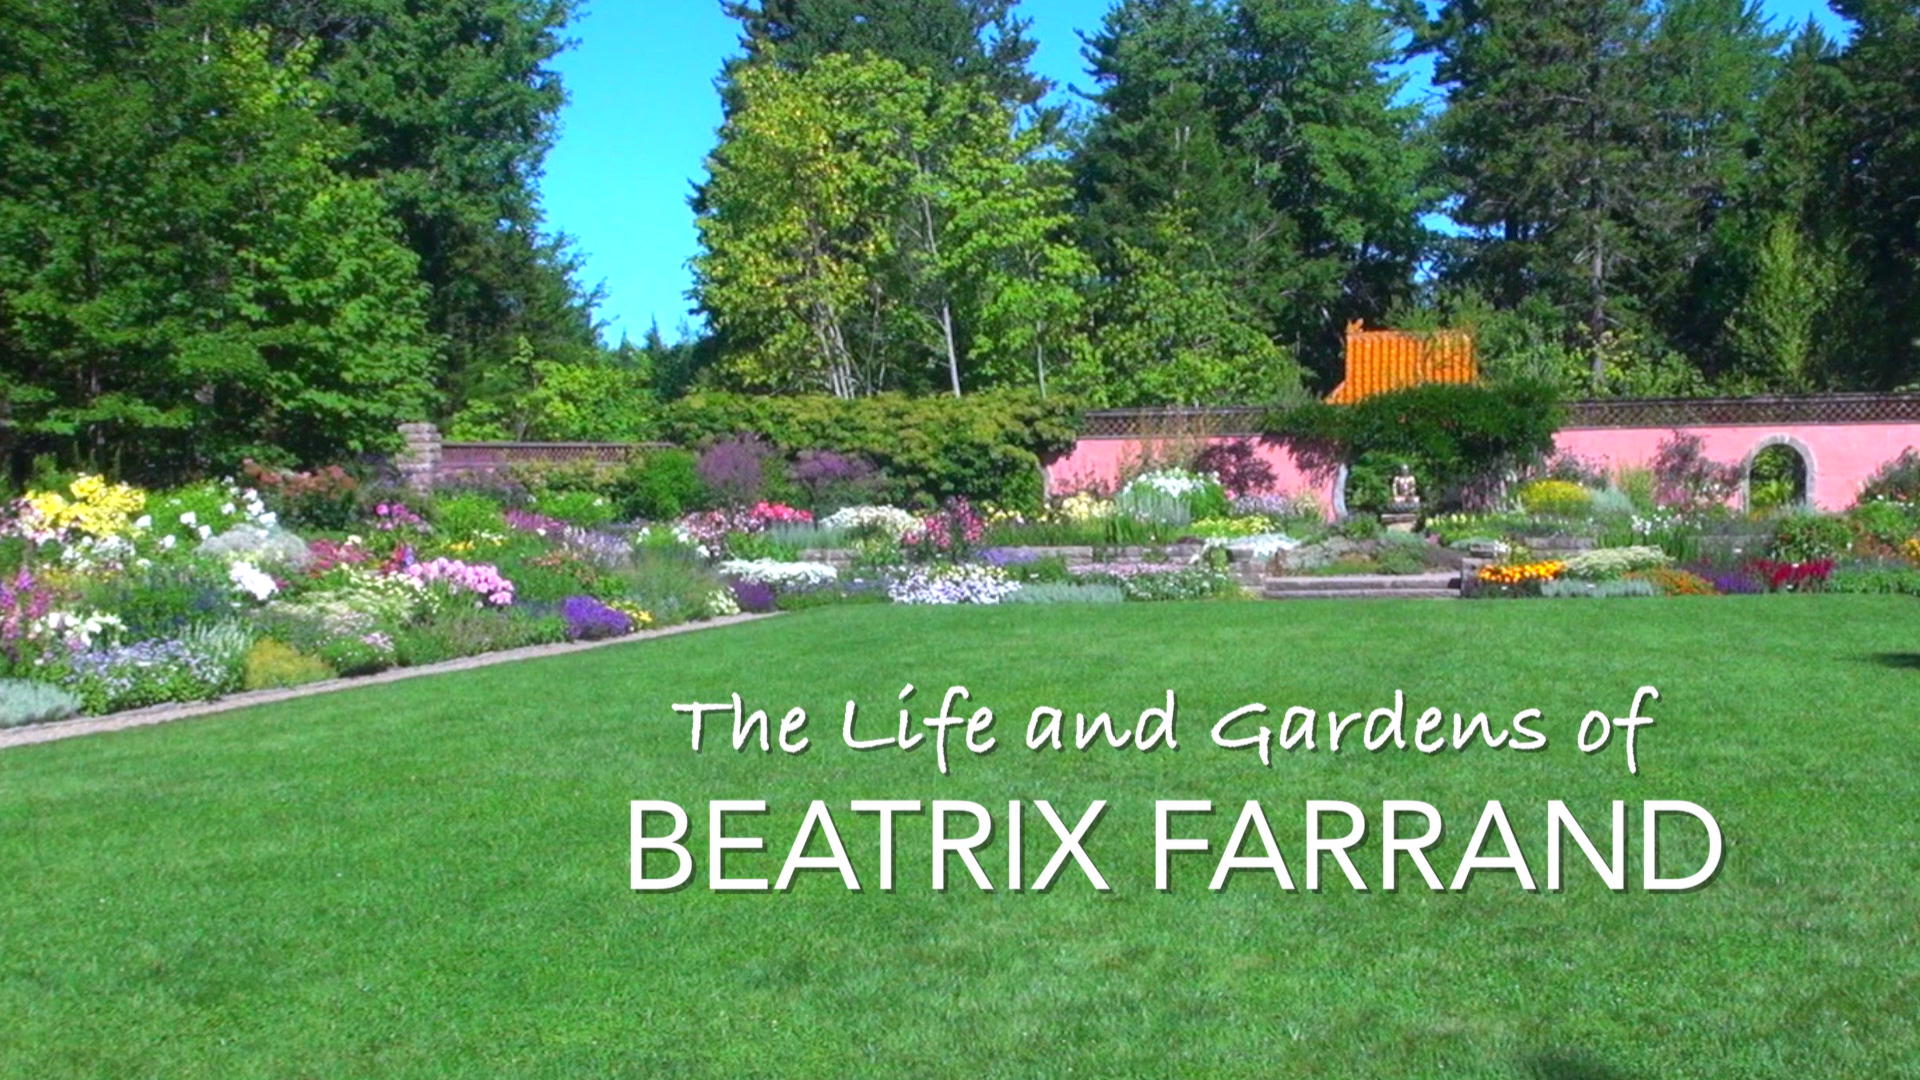 THE LIFE AND GARDENS OF BEATRIX FARRAND (2017) by Karyl Evans